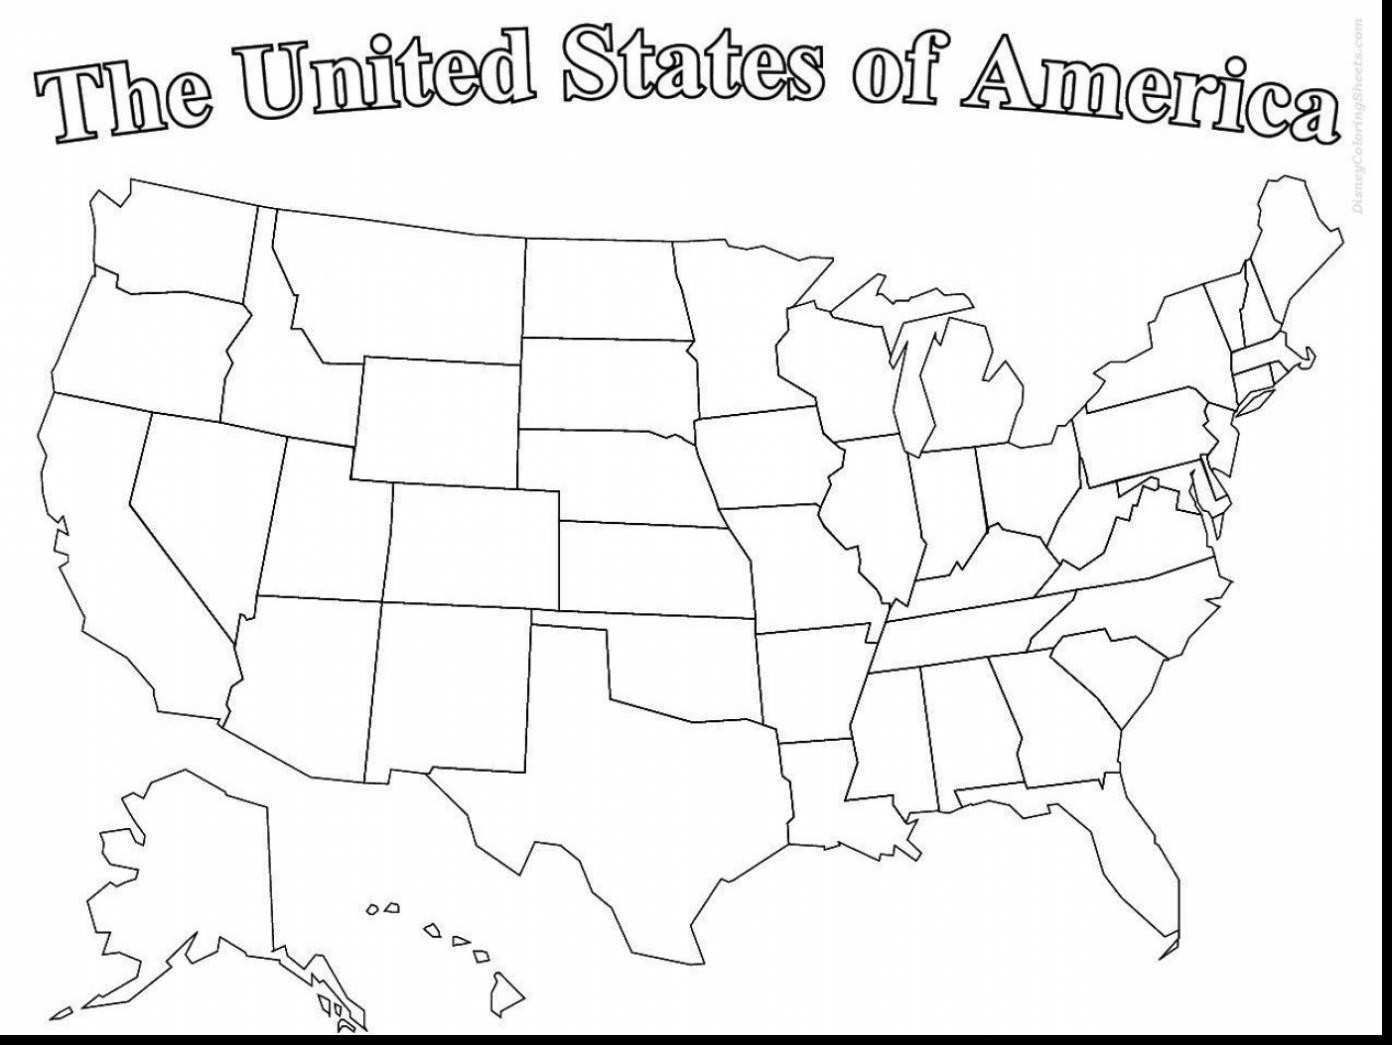 Puzzle Coloring Pages Unique Printable Puzzle Map The United States - Printable Usa Puzzle